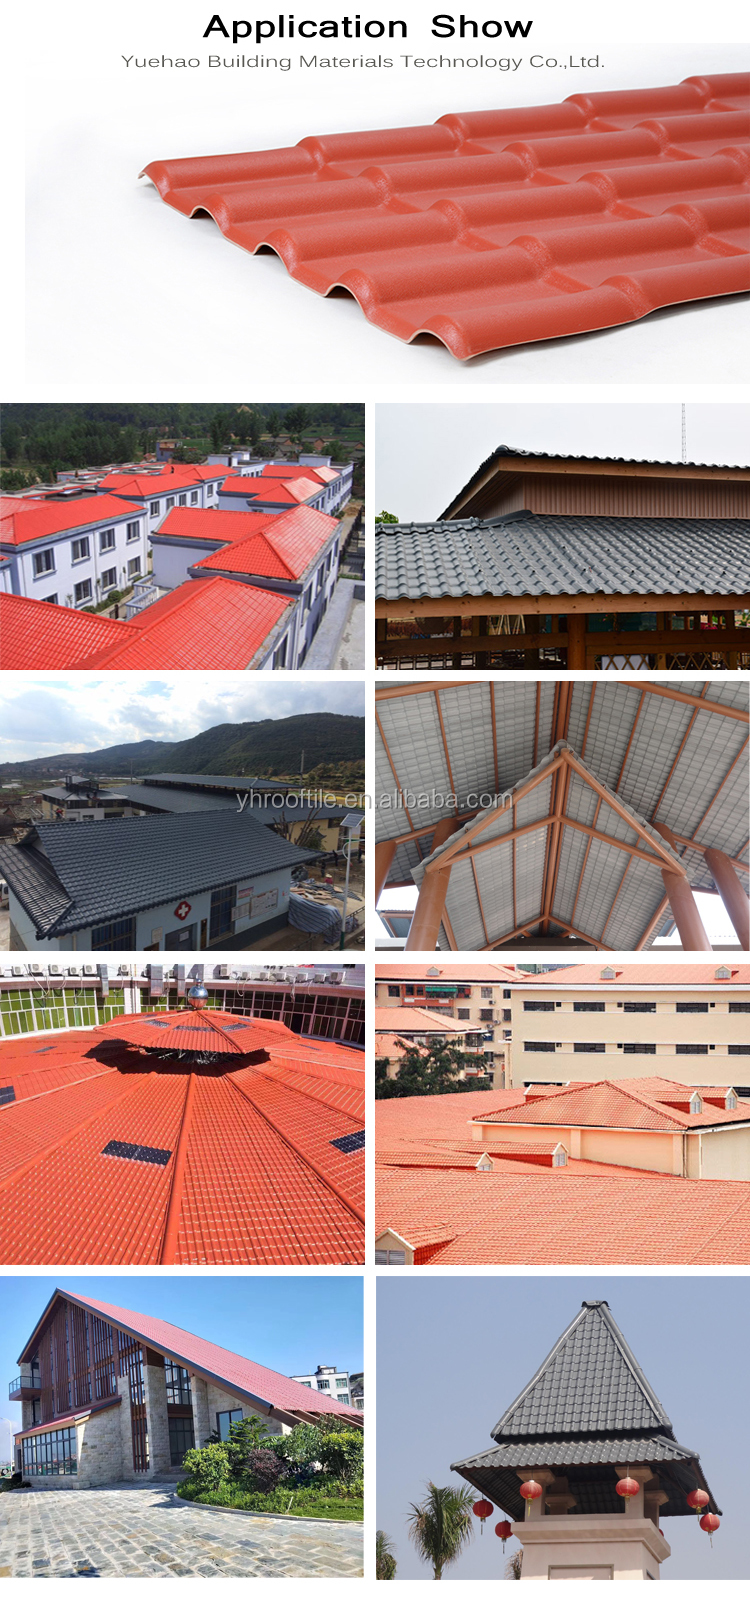 Yuehao plastic roof tiles wholesaler tiles lightweight plastic roof tiles design for water draining-5